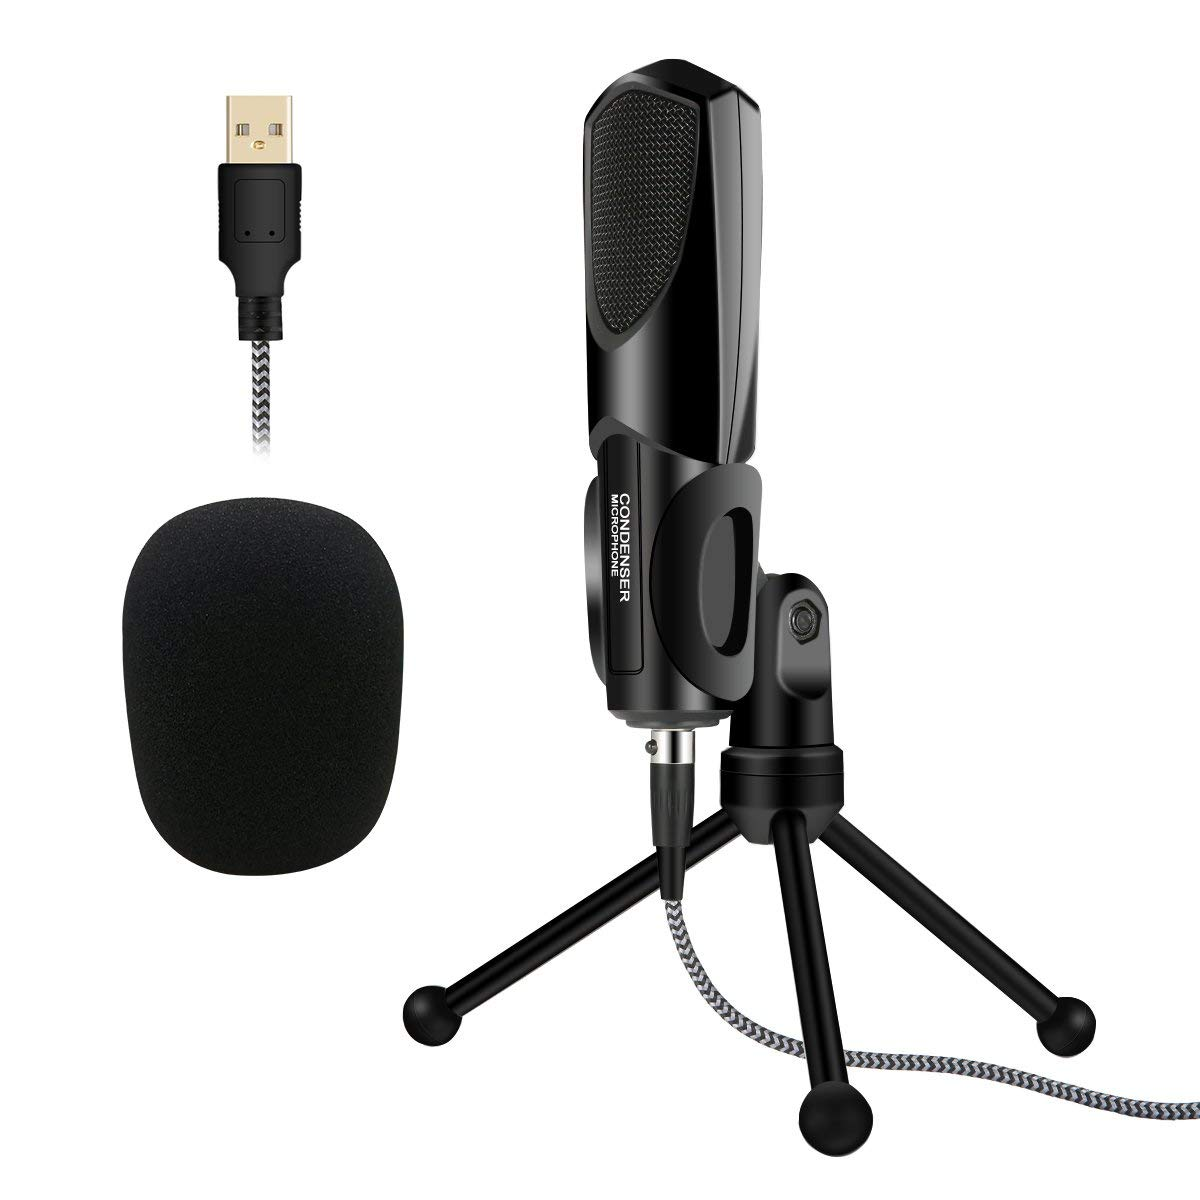 USB Computer Microphone, Plug &Play Home Studio Microphone, Condenser Microphone with Tripod Stand for Skype, Recordings for YouTube, Google Voice Search, Games, Podcasting Karaoke (Windows/Mac)